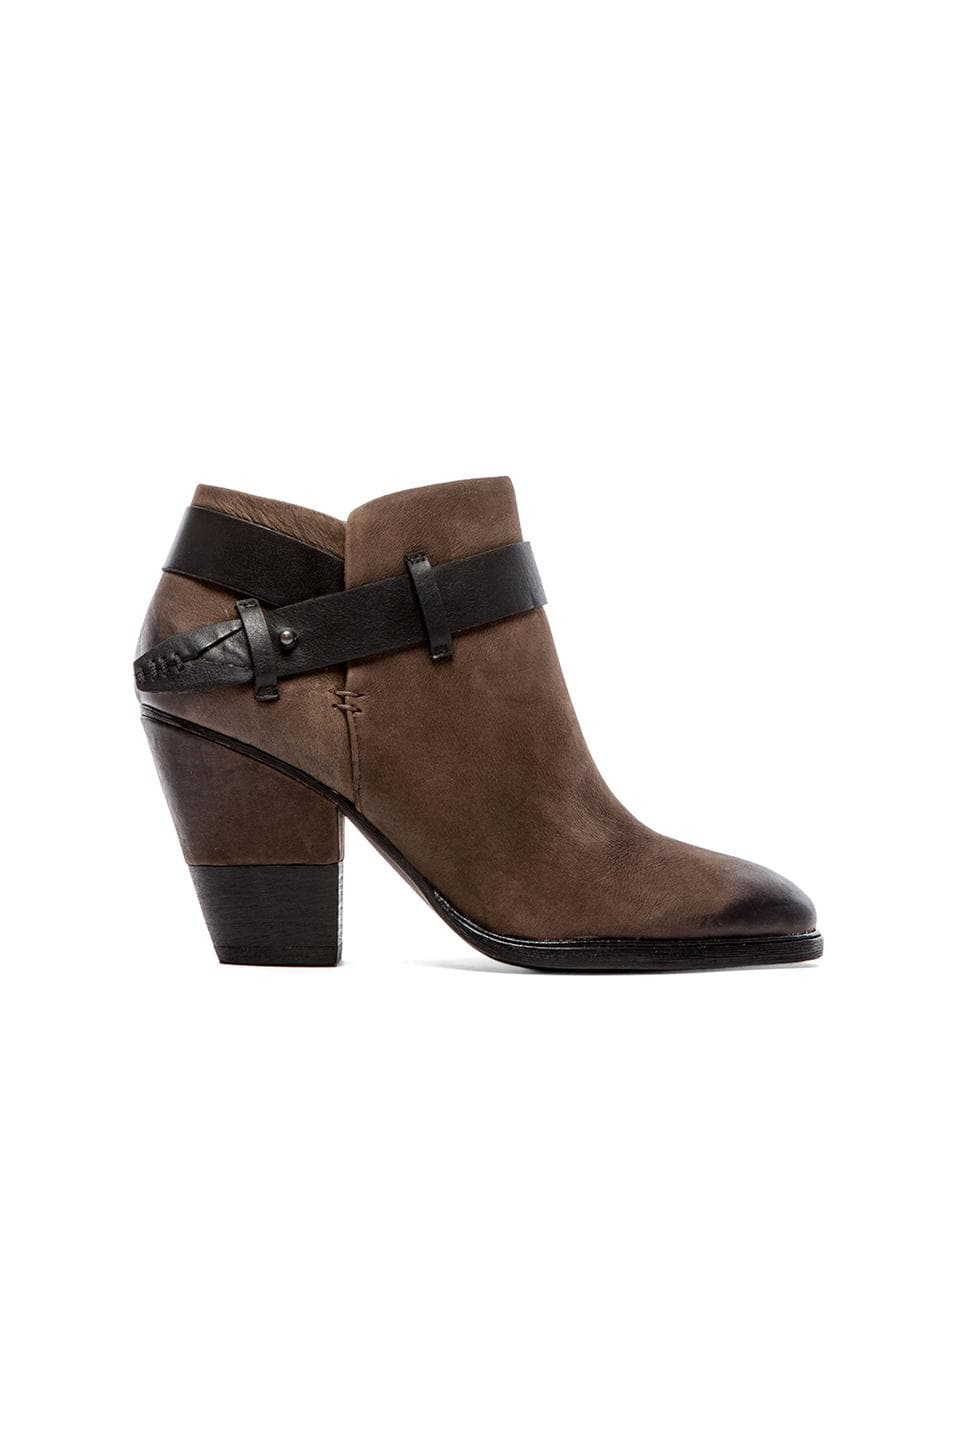 Dolce Vita Haelyn Bootie in Steel